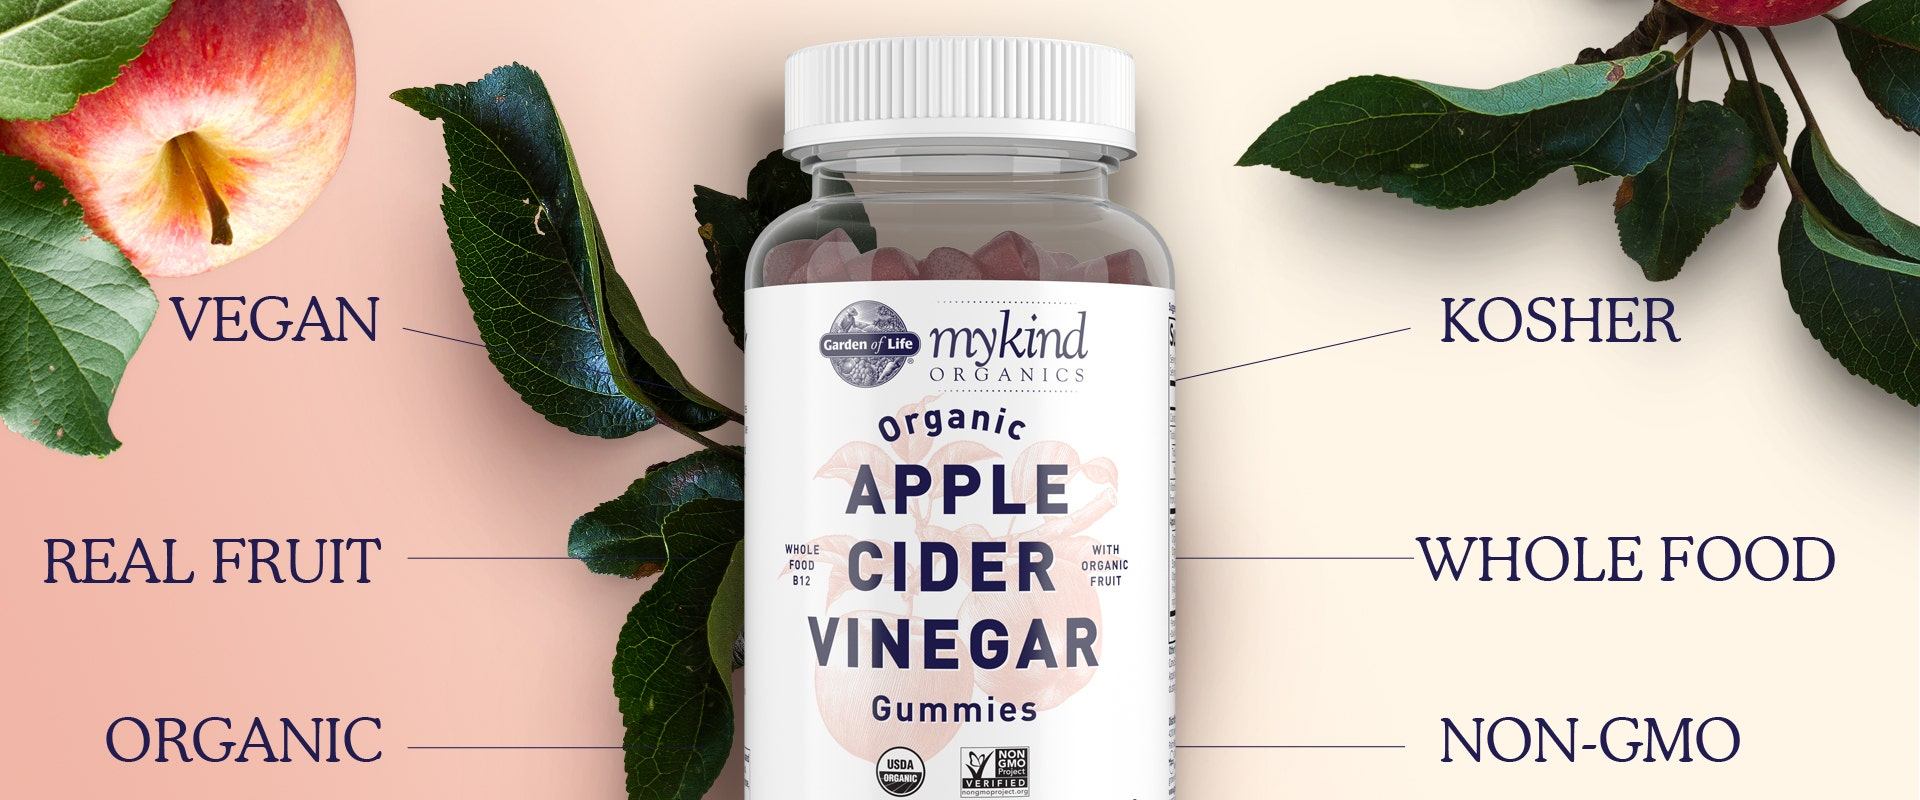 Garden of Life mykind Organics Apple Cider Vinegar Gummies